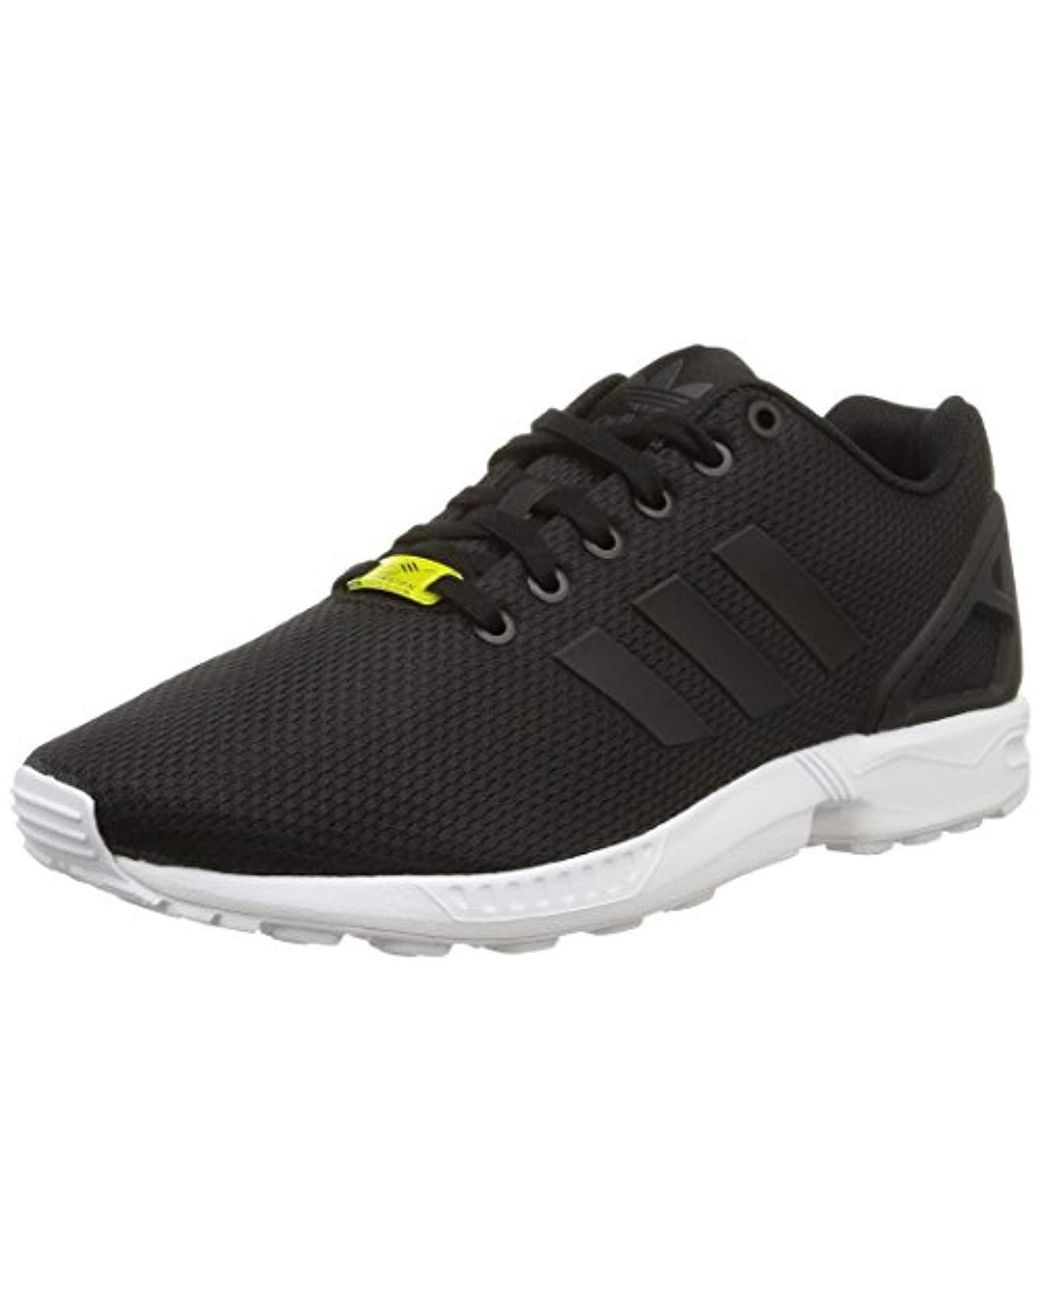 baf7136ad adidas Zx Flux Women s Shoes (trainers) In Black in Black - Save 40 ...